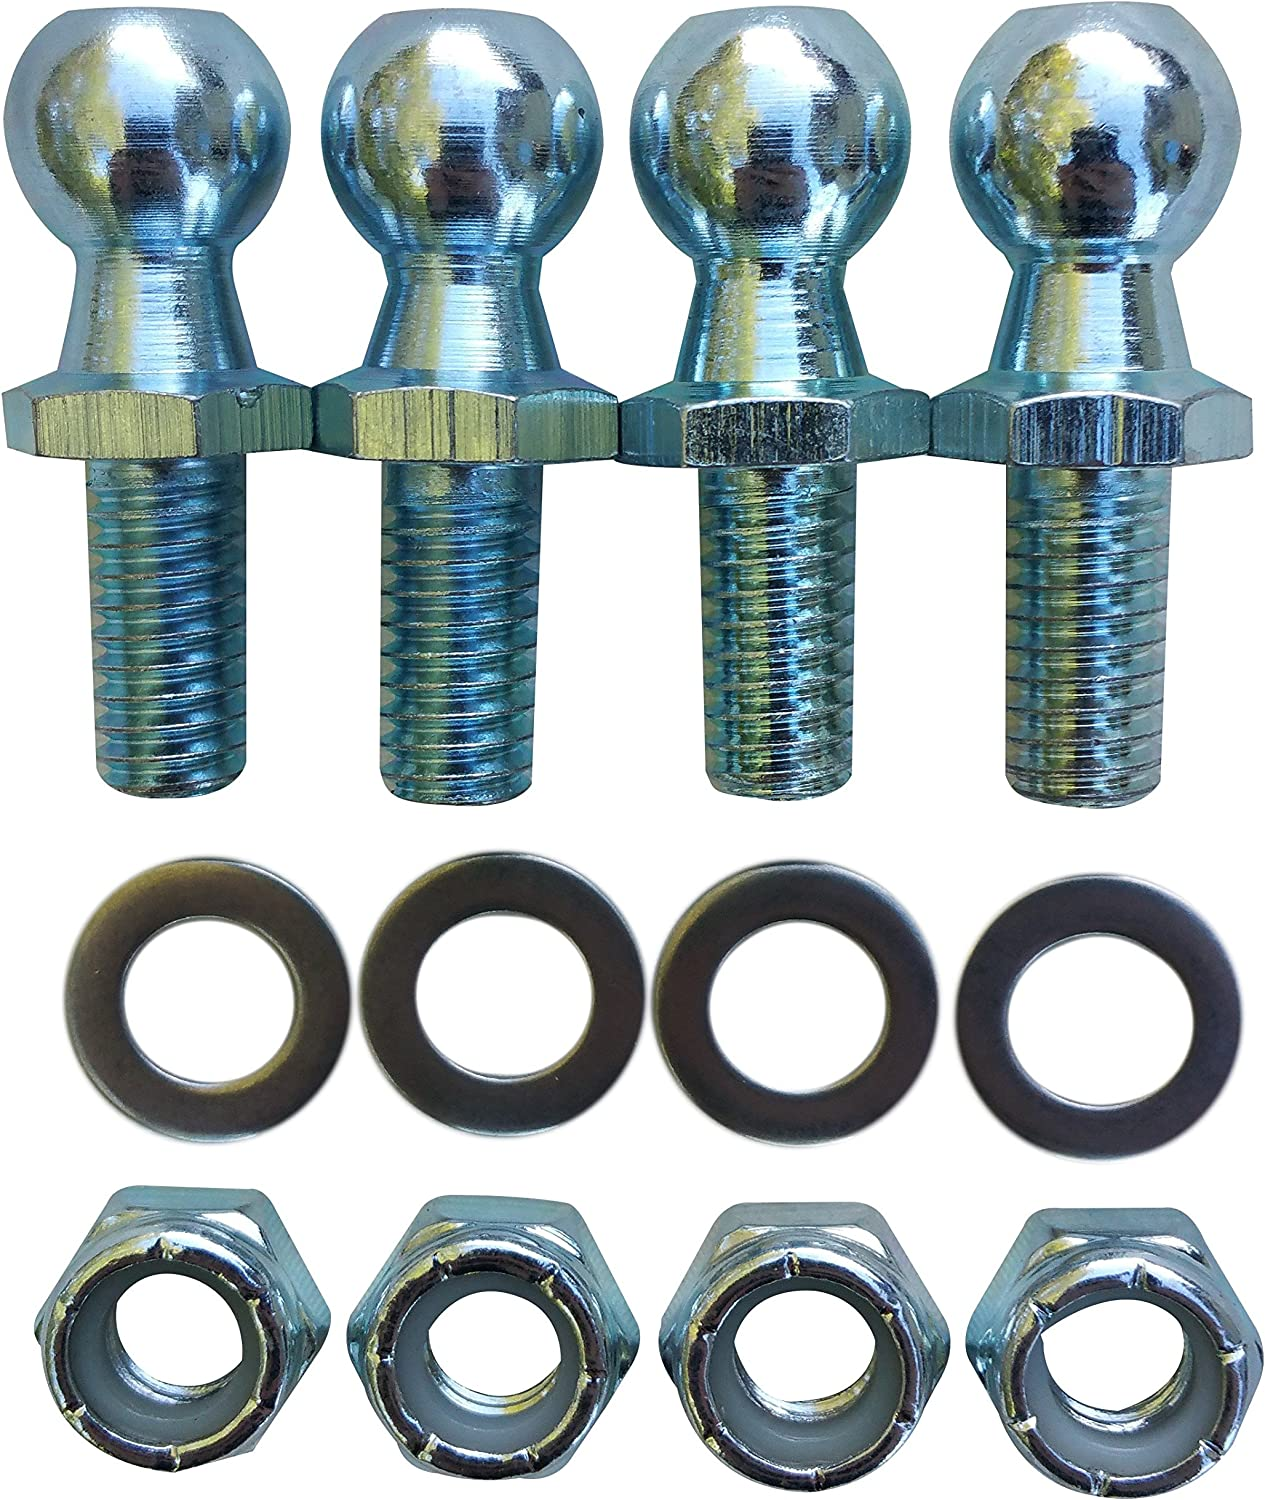 """(4 Pack) 13Mm Ball Studs mit Hardware - 5/16-18 Thread X 5/8"""" lange Shank - Gases Lift Support Strut Fitting"""